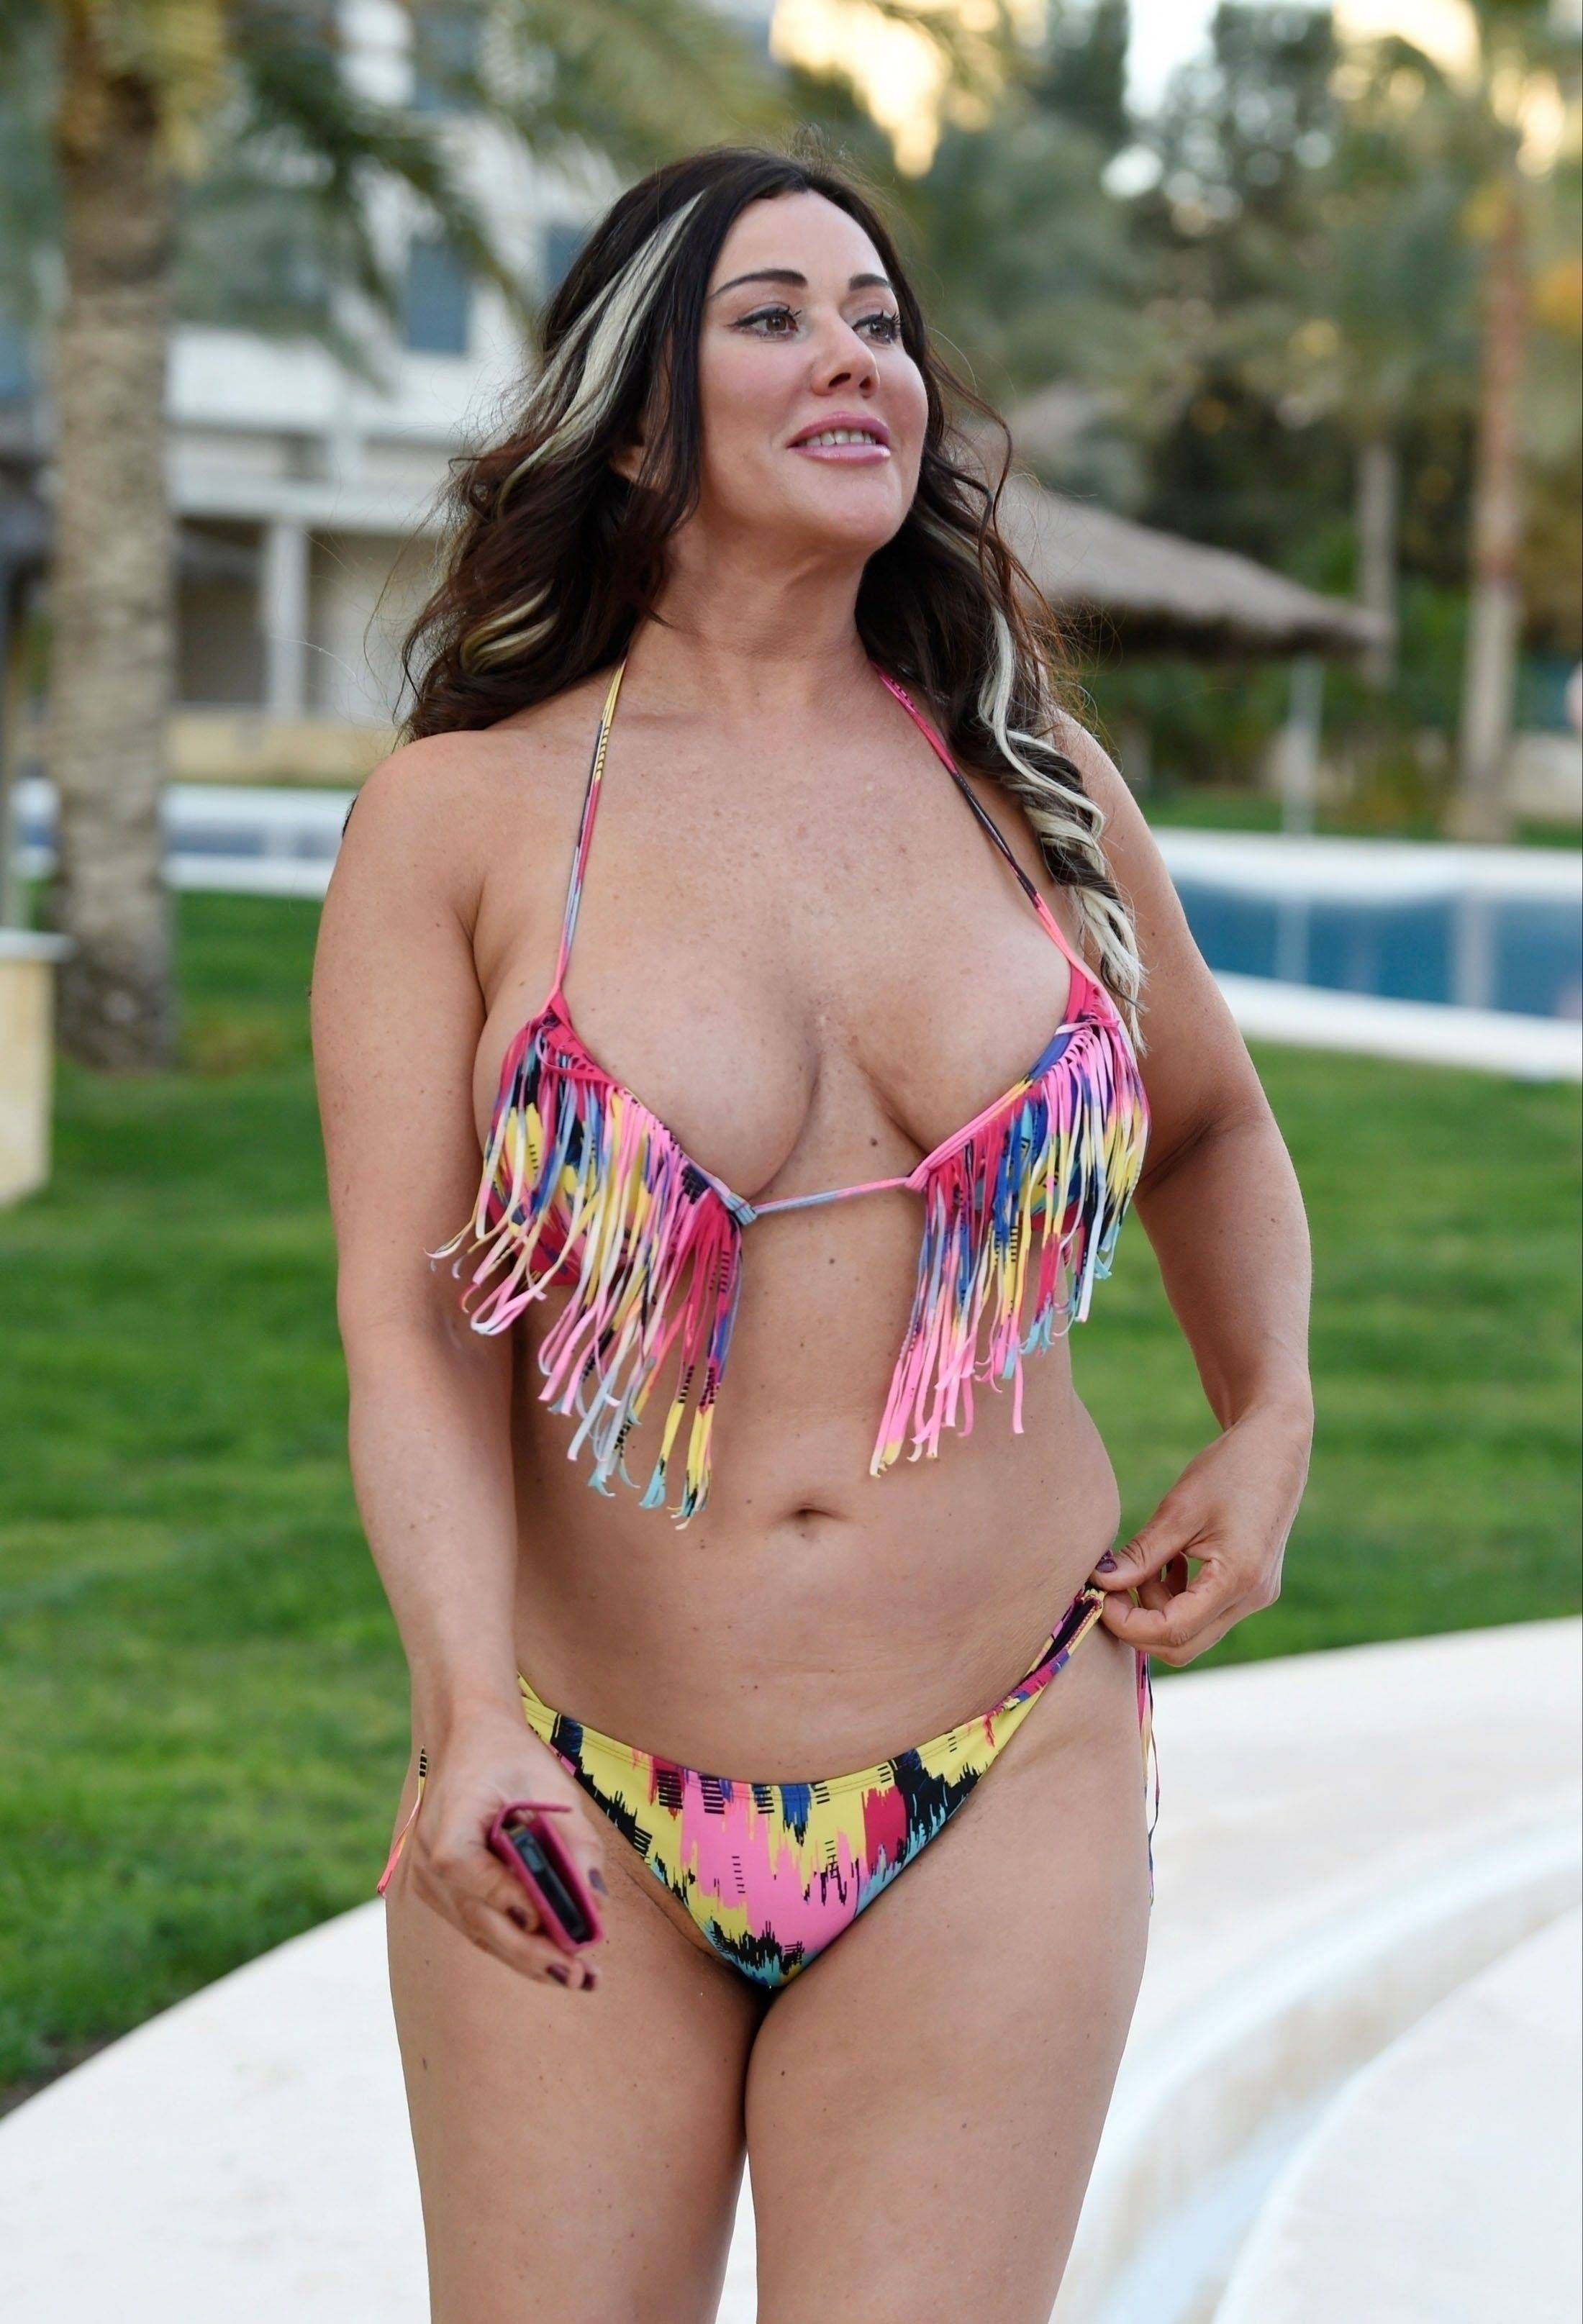 picture The hottest lisa appleton photos from the beach